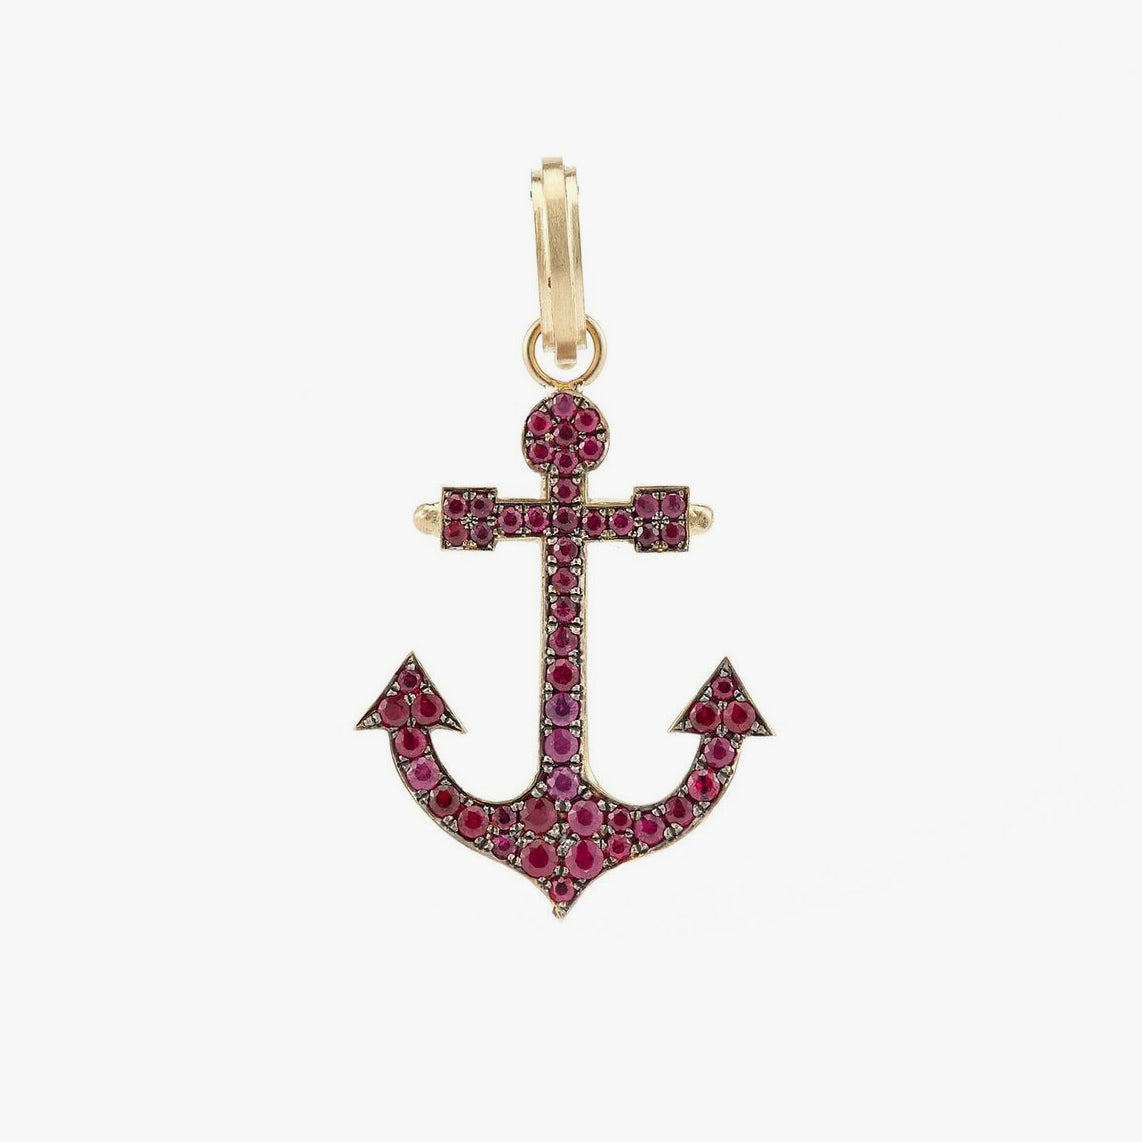 Anchor Charm with Rubies